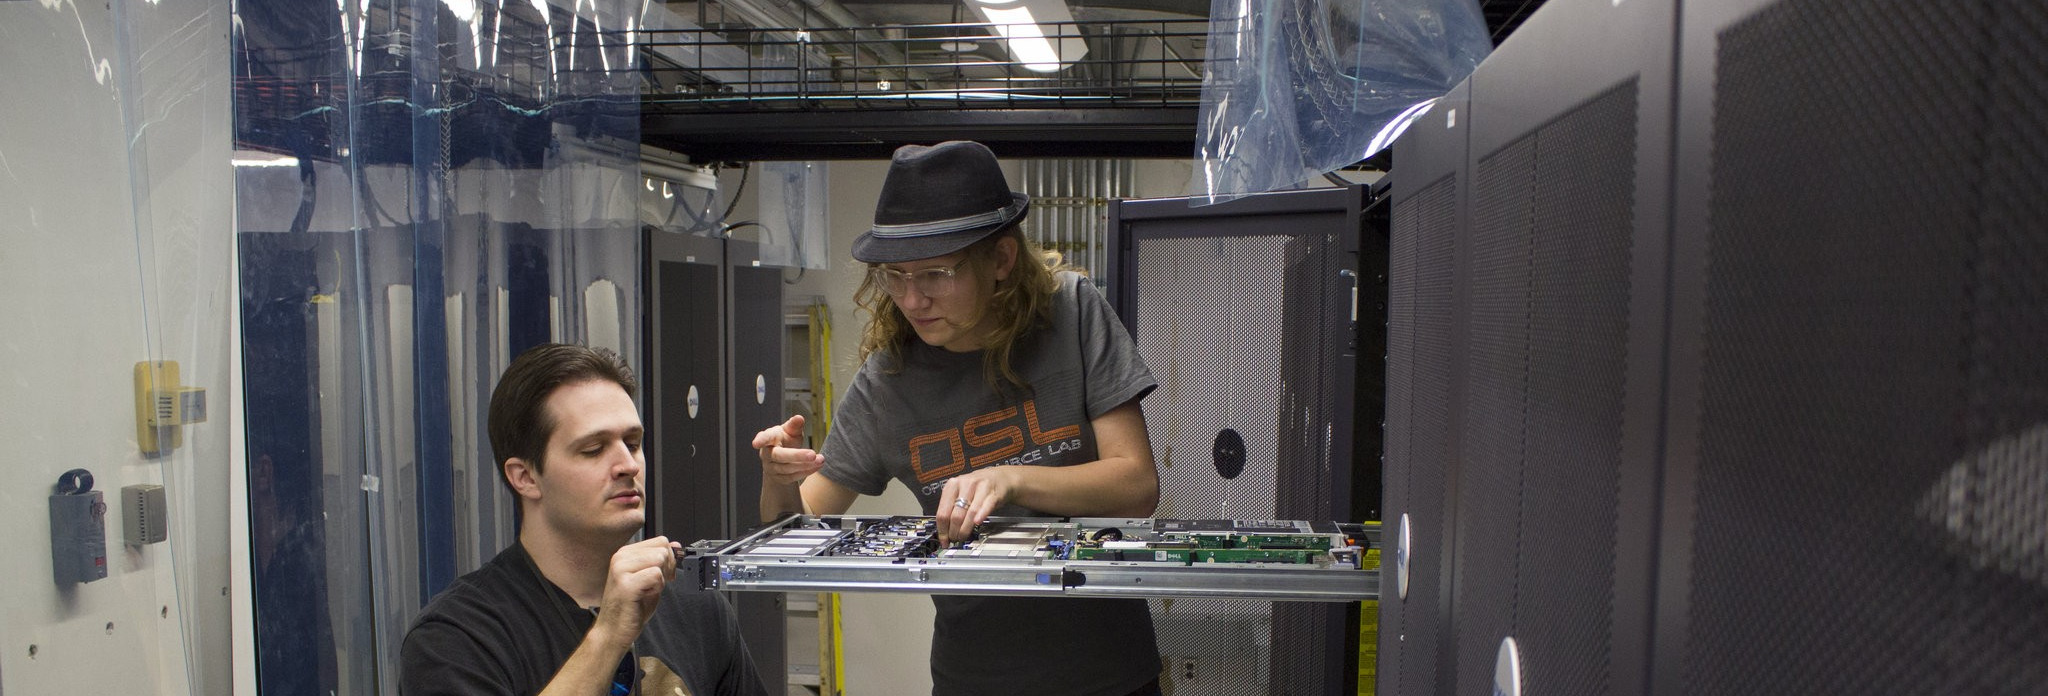 opening up a server in the OSL datacenter